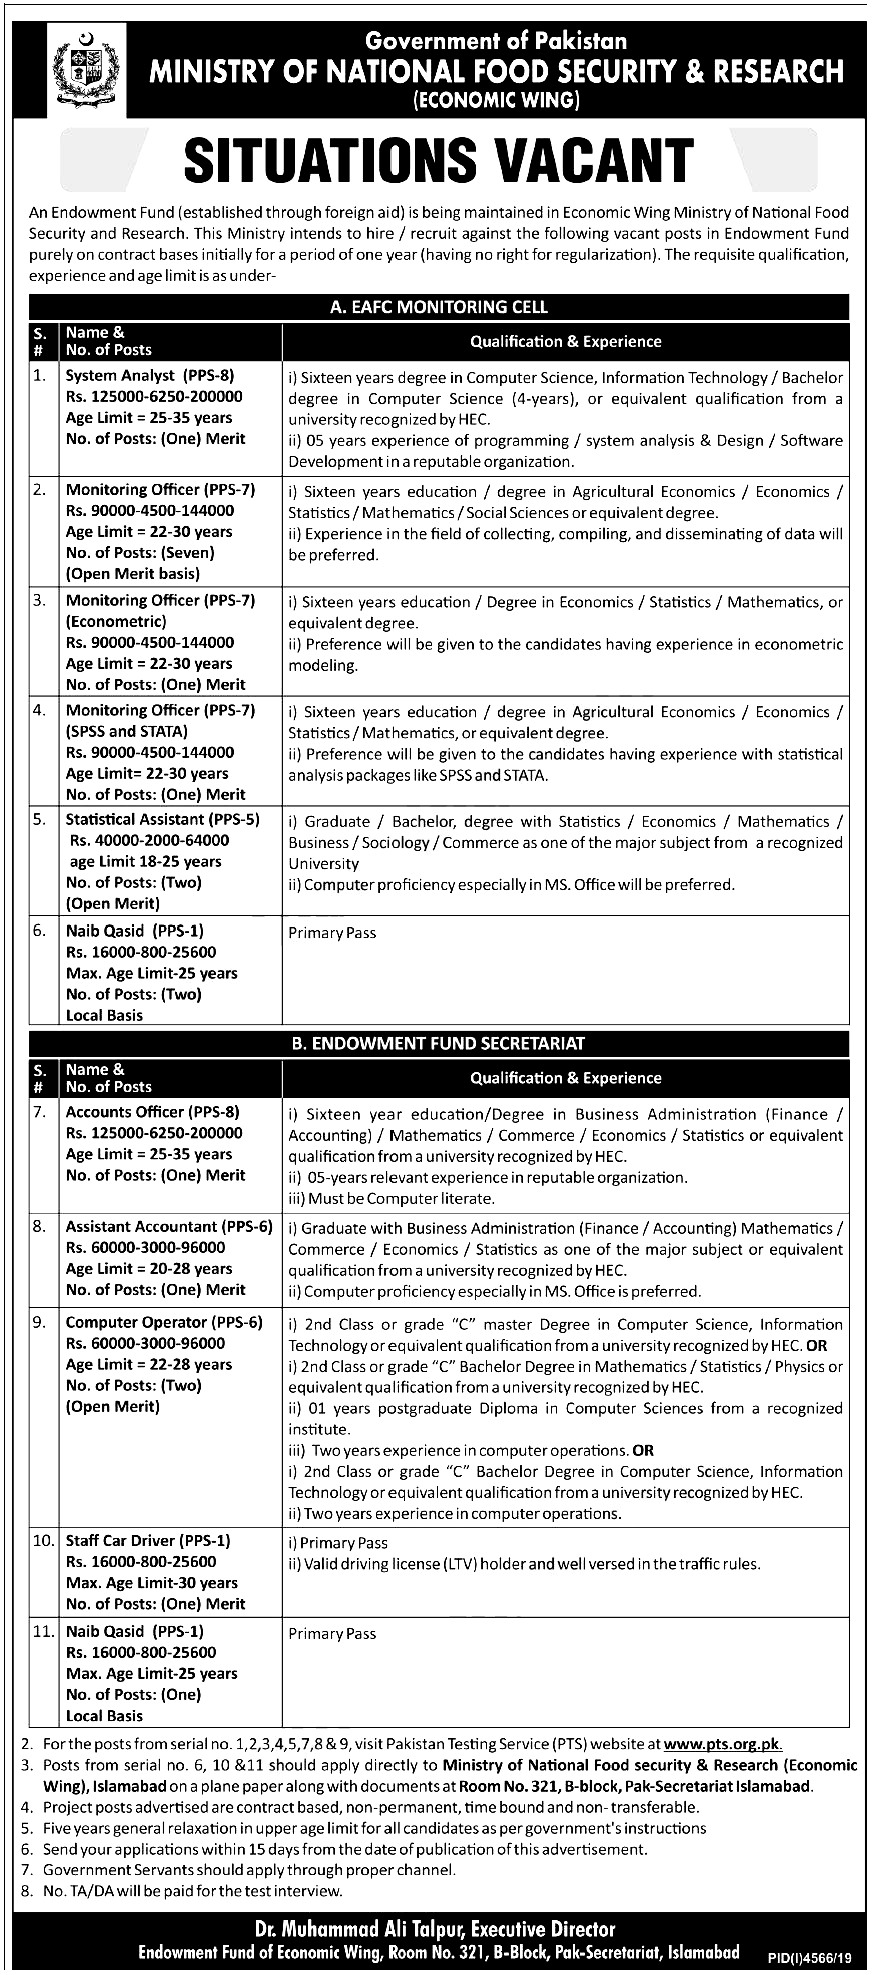 Ministry of National Food Security and Research PTS Jobs 2020 Apply Online